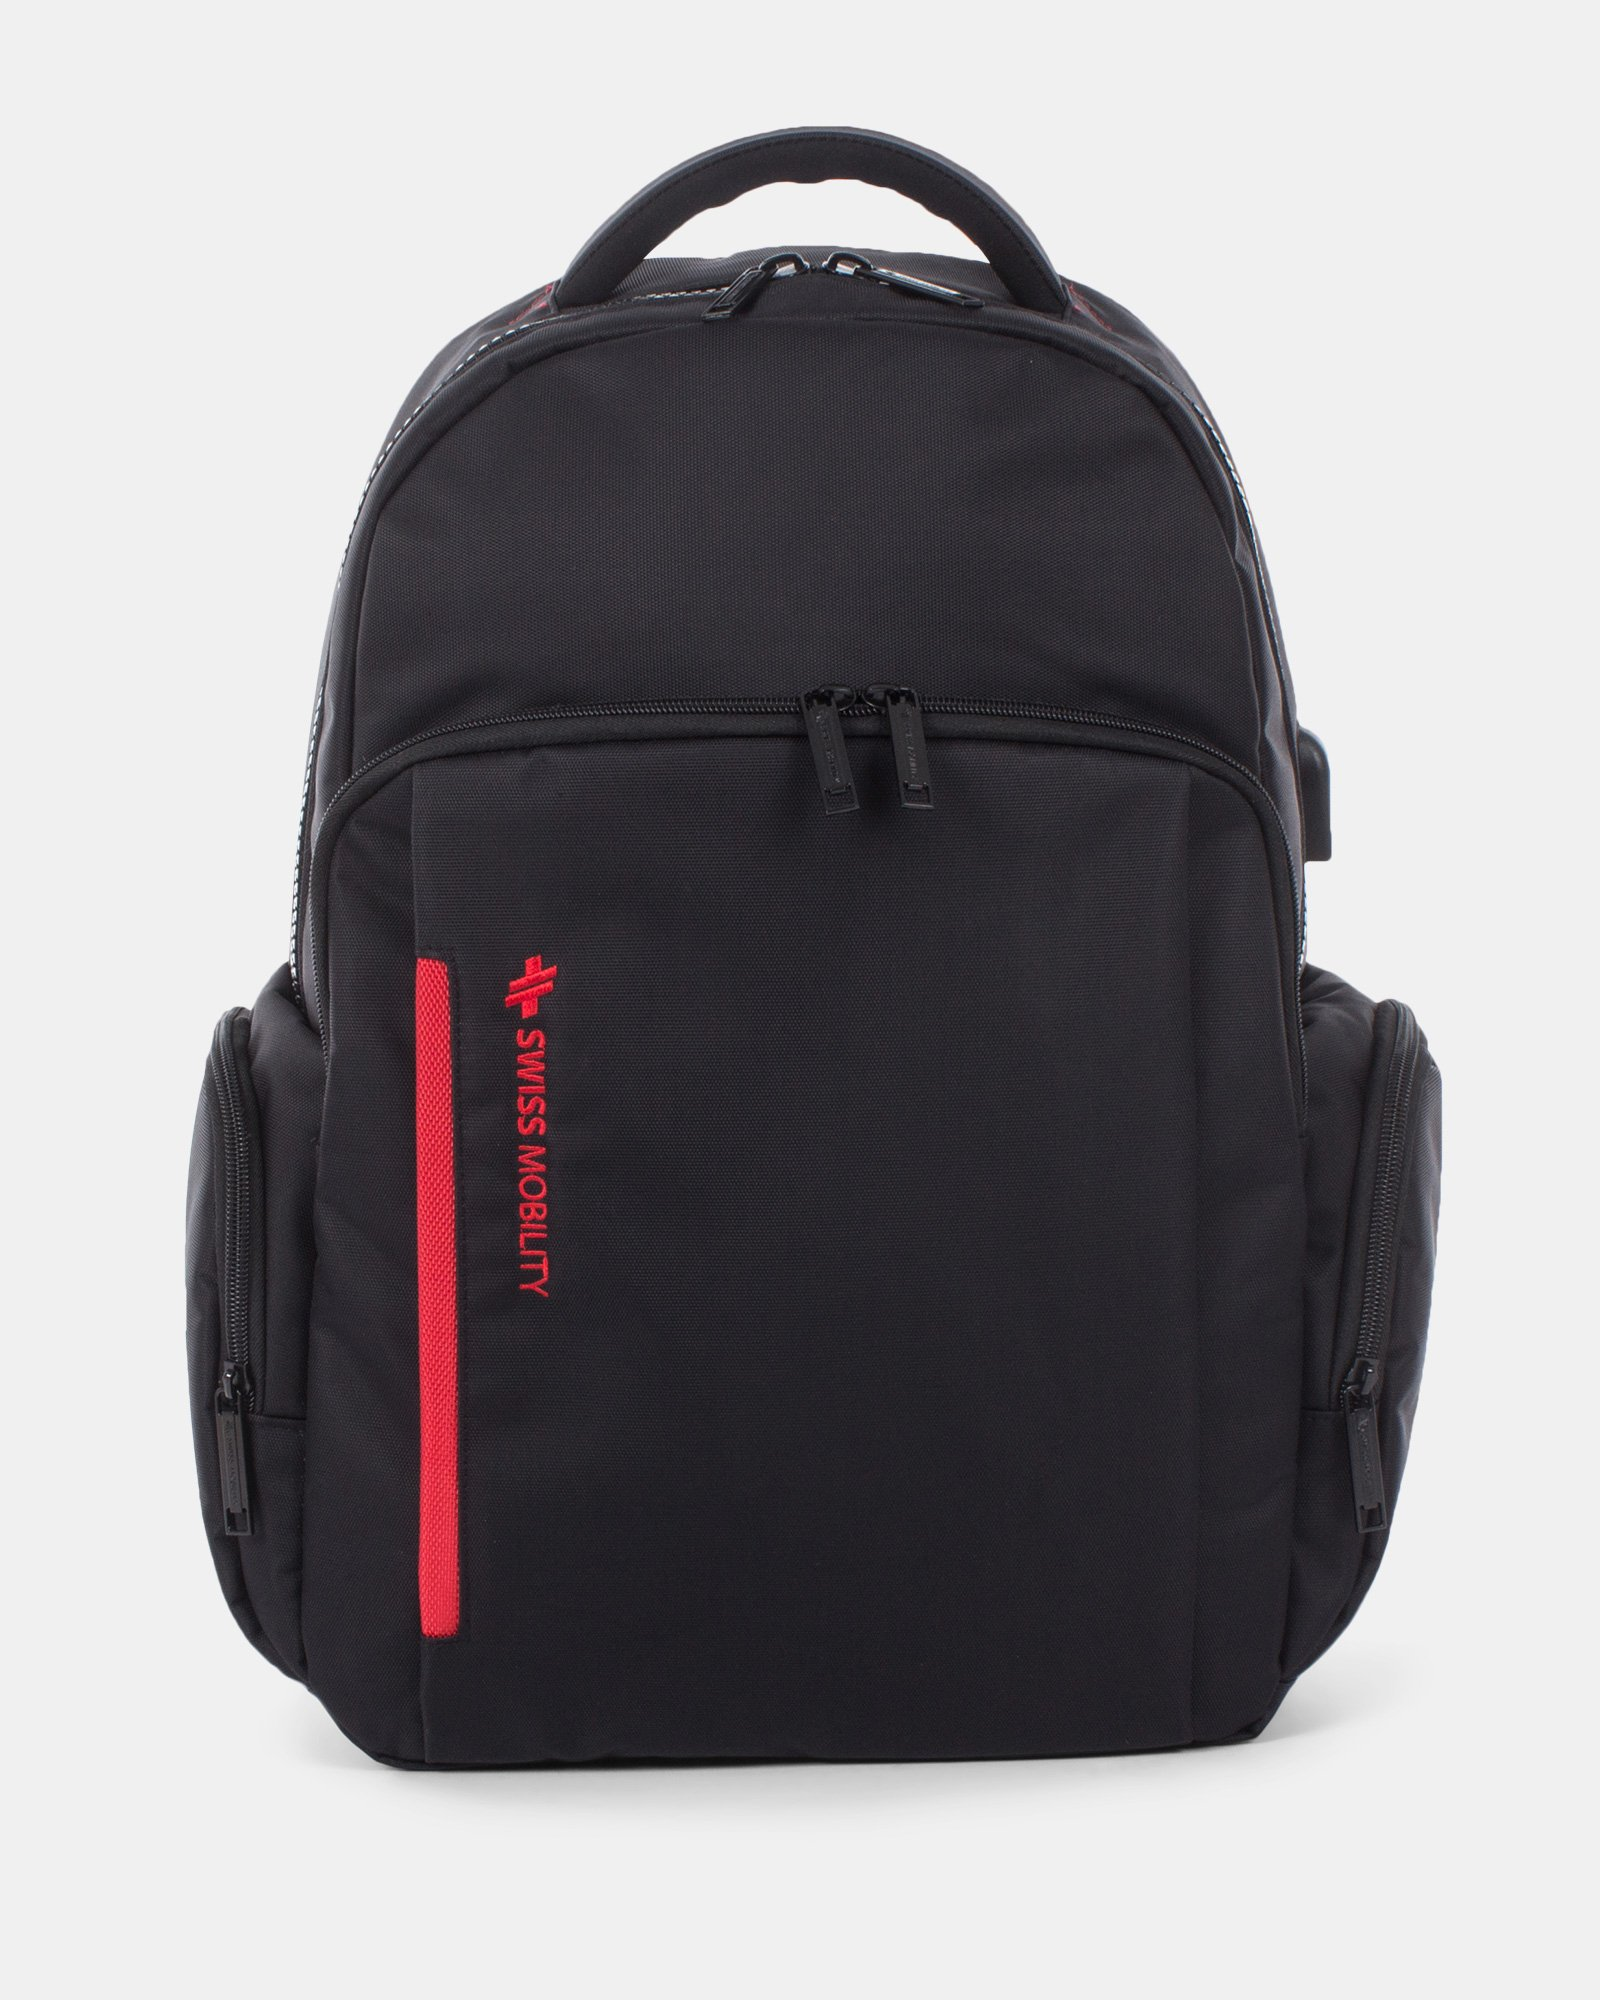 STRIDE-Backpack - Swiss Mobility - Zoom